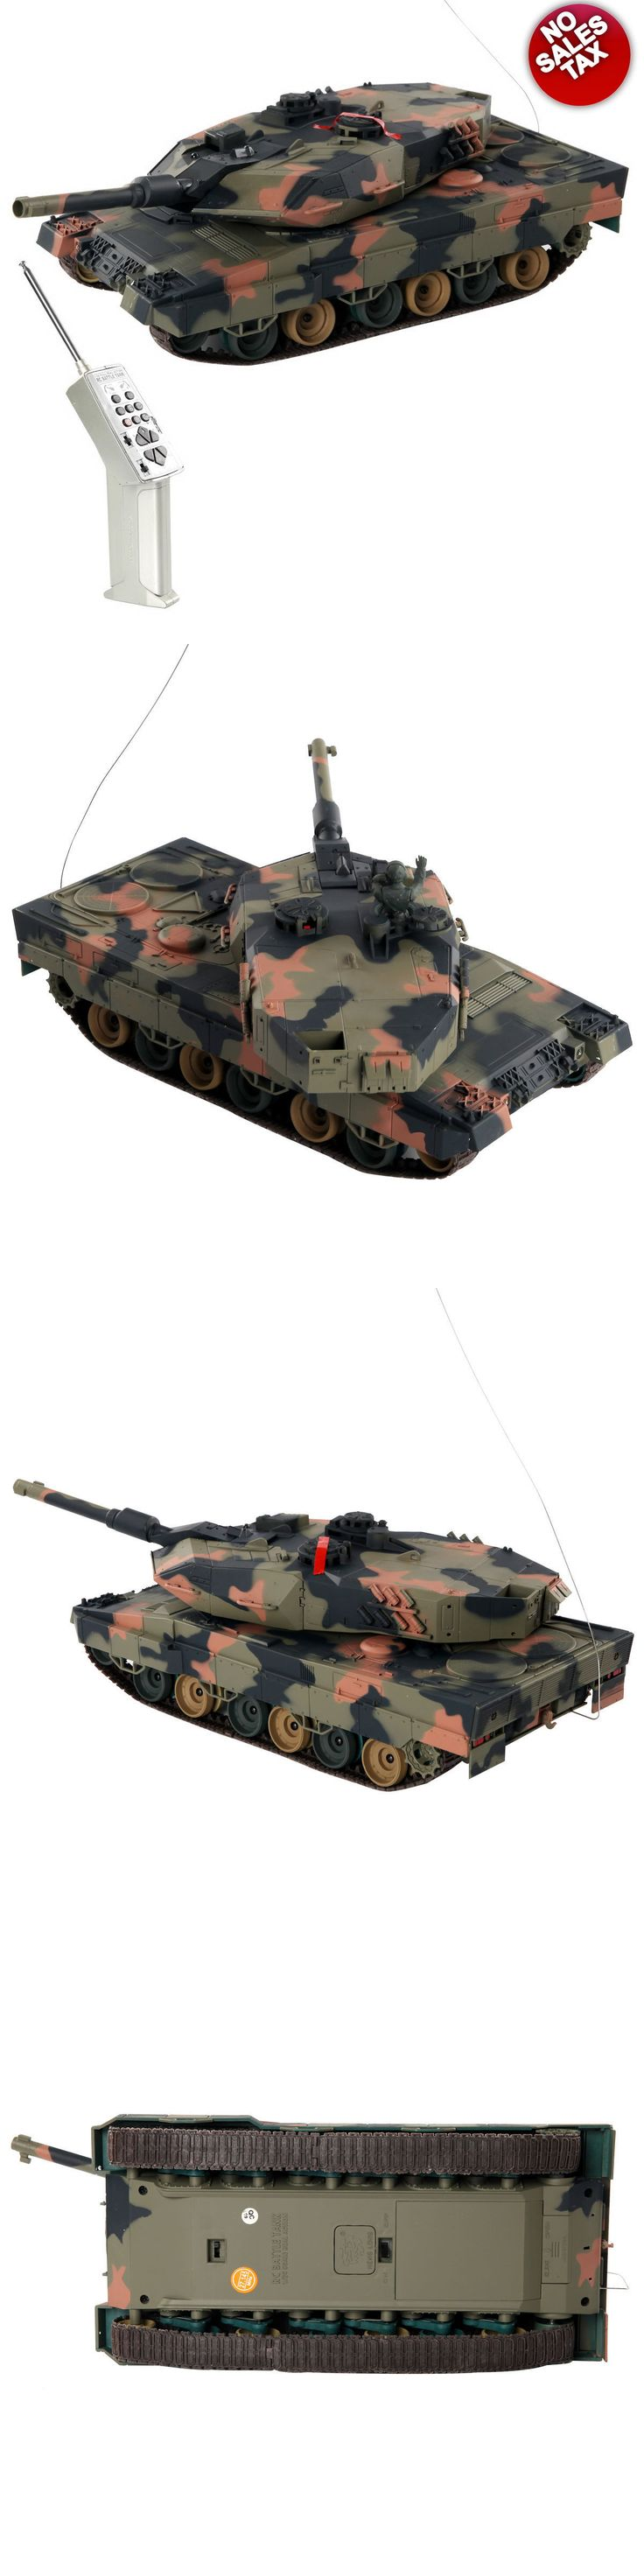 Tanks and Military Vehicles 45986: Rc Tank Leopard Ii German A5 Airsoft Tank Toy Military Battle Vehicle 1 24 Mbt -> BUY IT NOW ONLY: $61.95 on eBay!